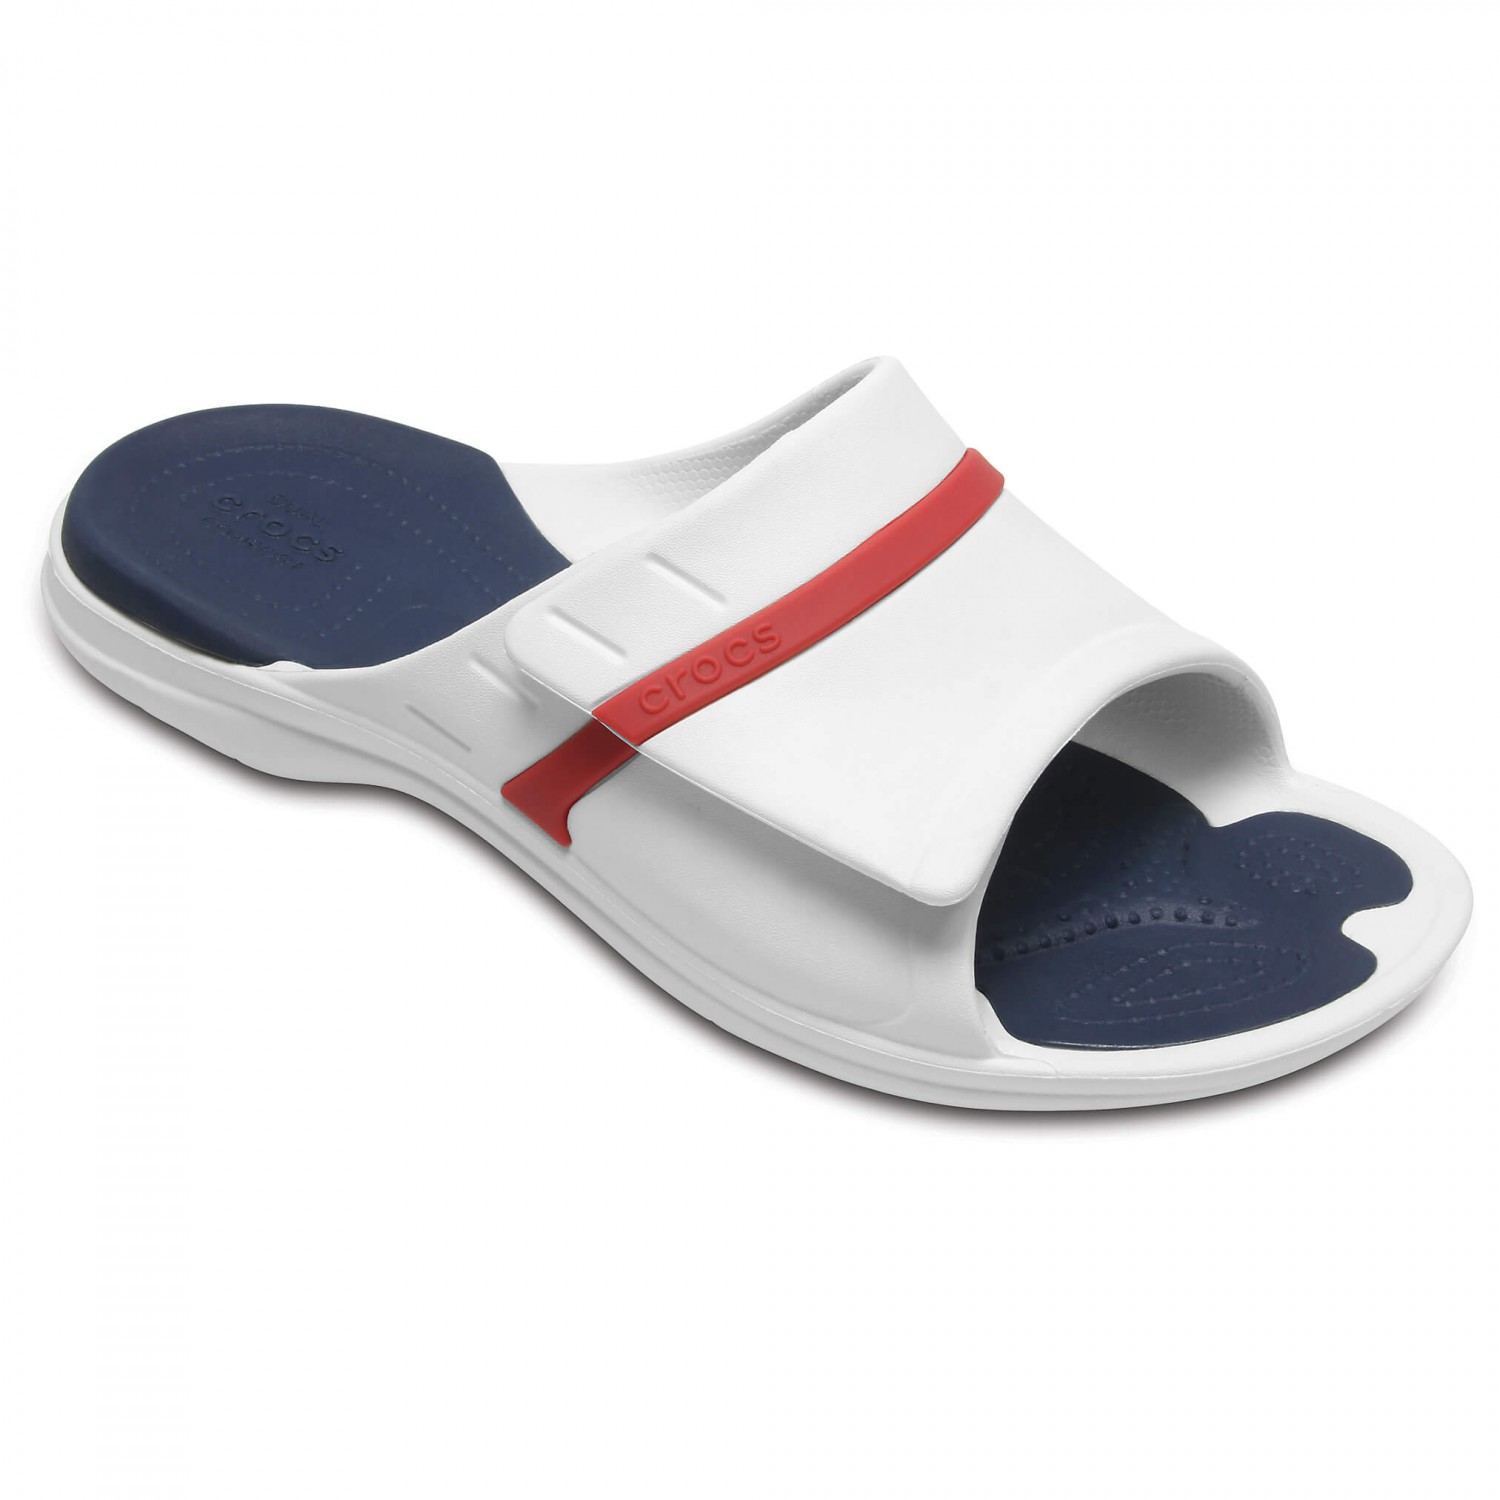 4ea629288a8a Crocs - Modi Sport Slide - Sandals